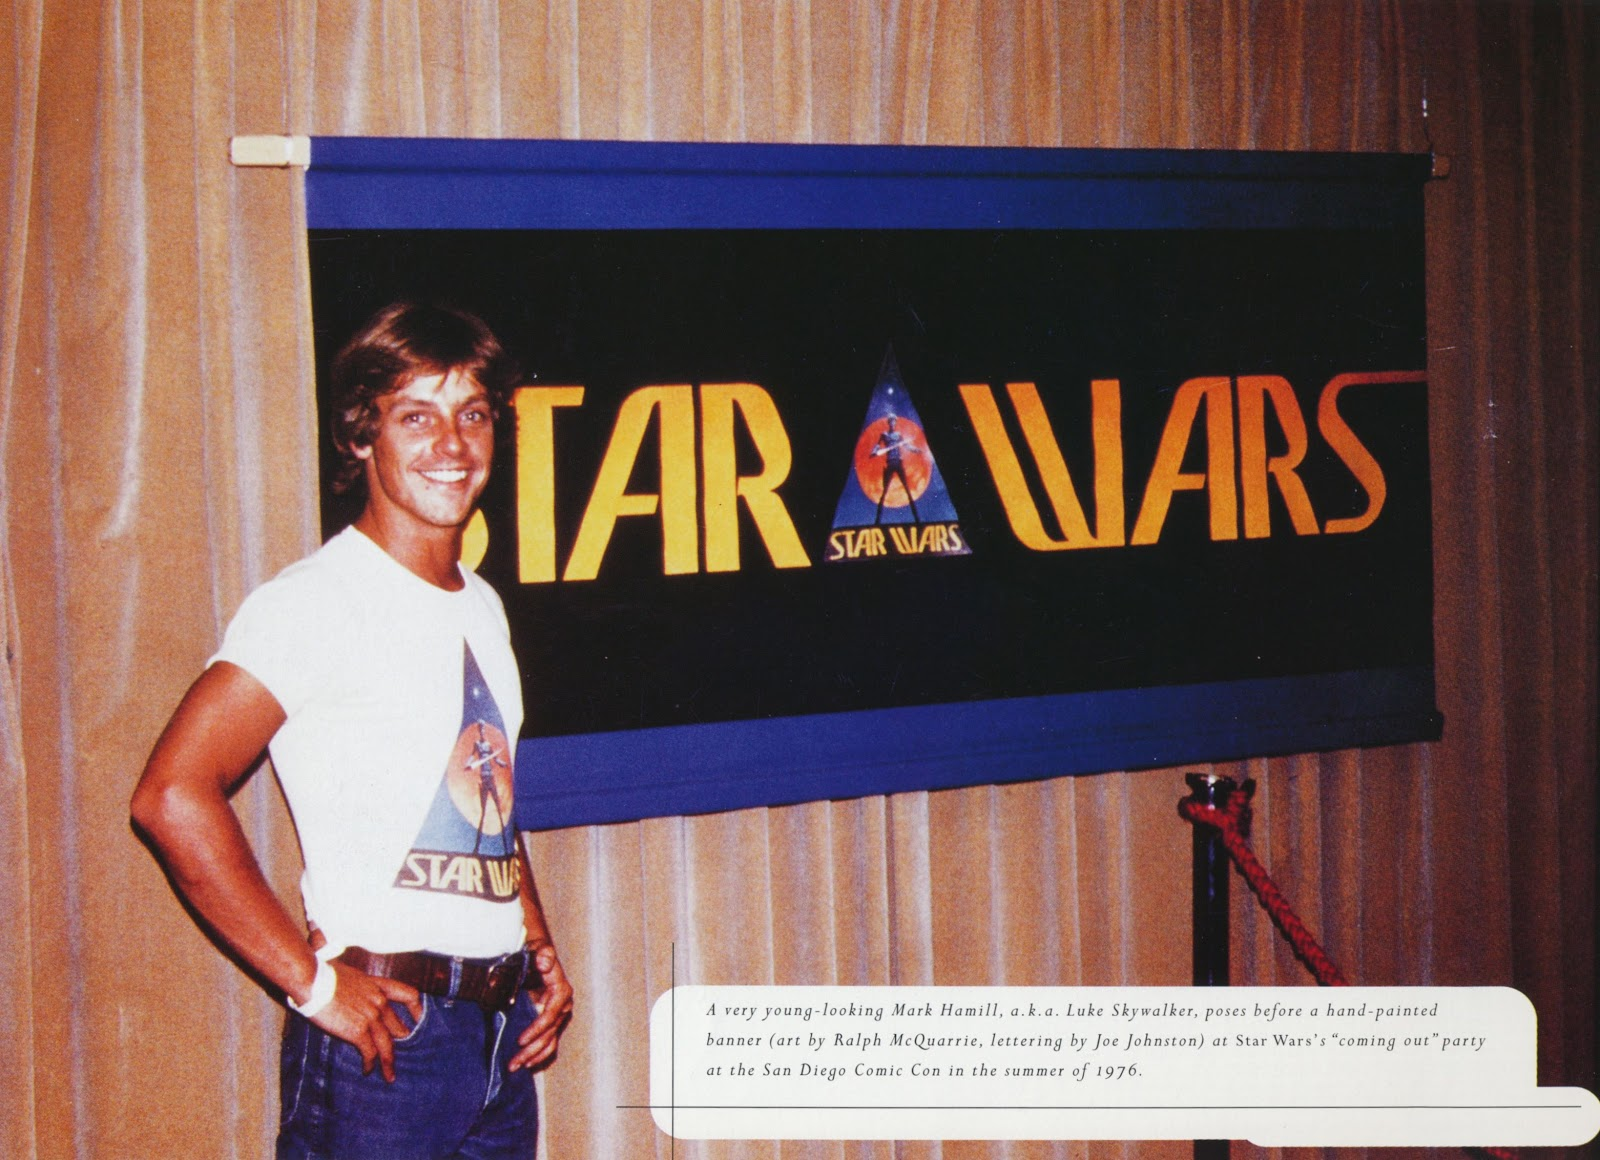 Star Wars 06 Joe Johnston Star Wars Scrapbook.jpg